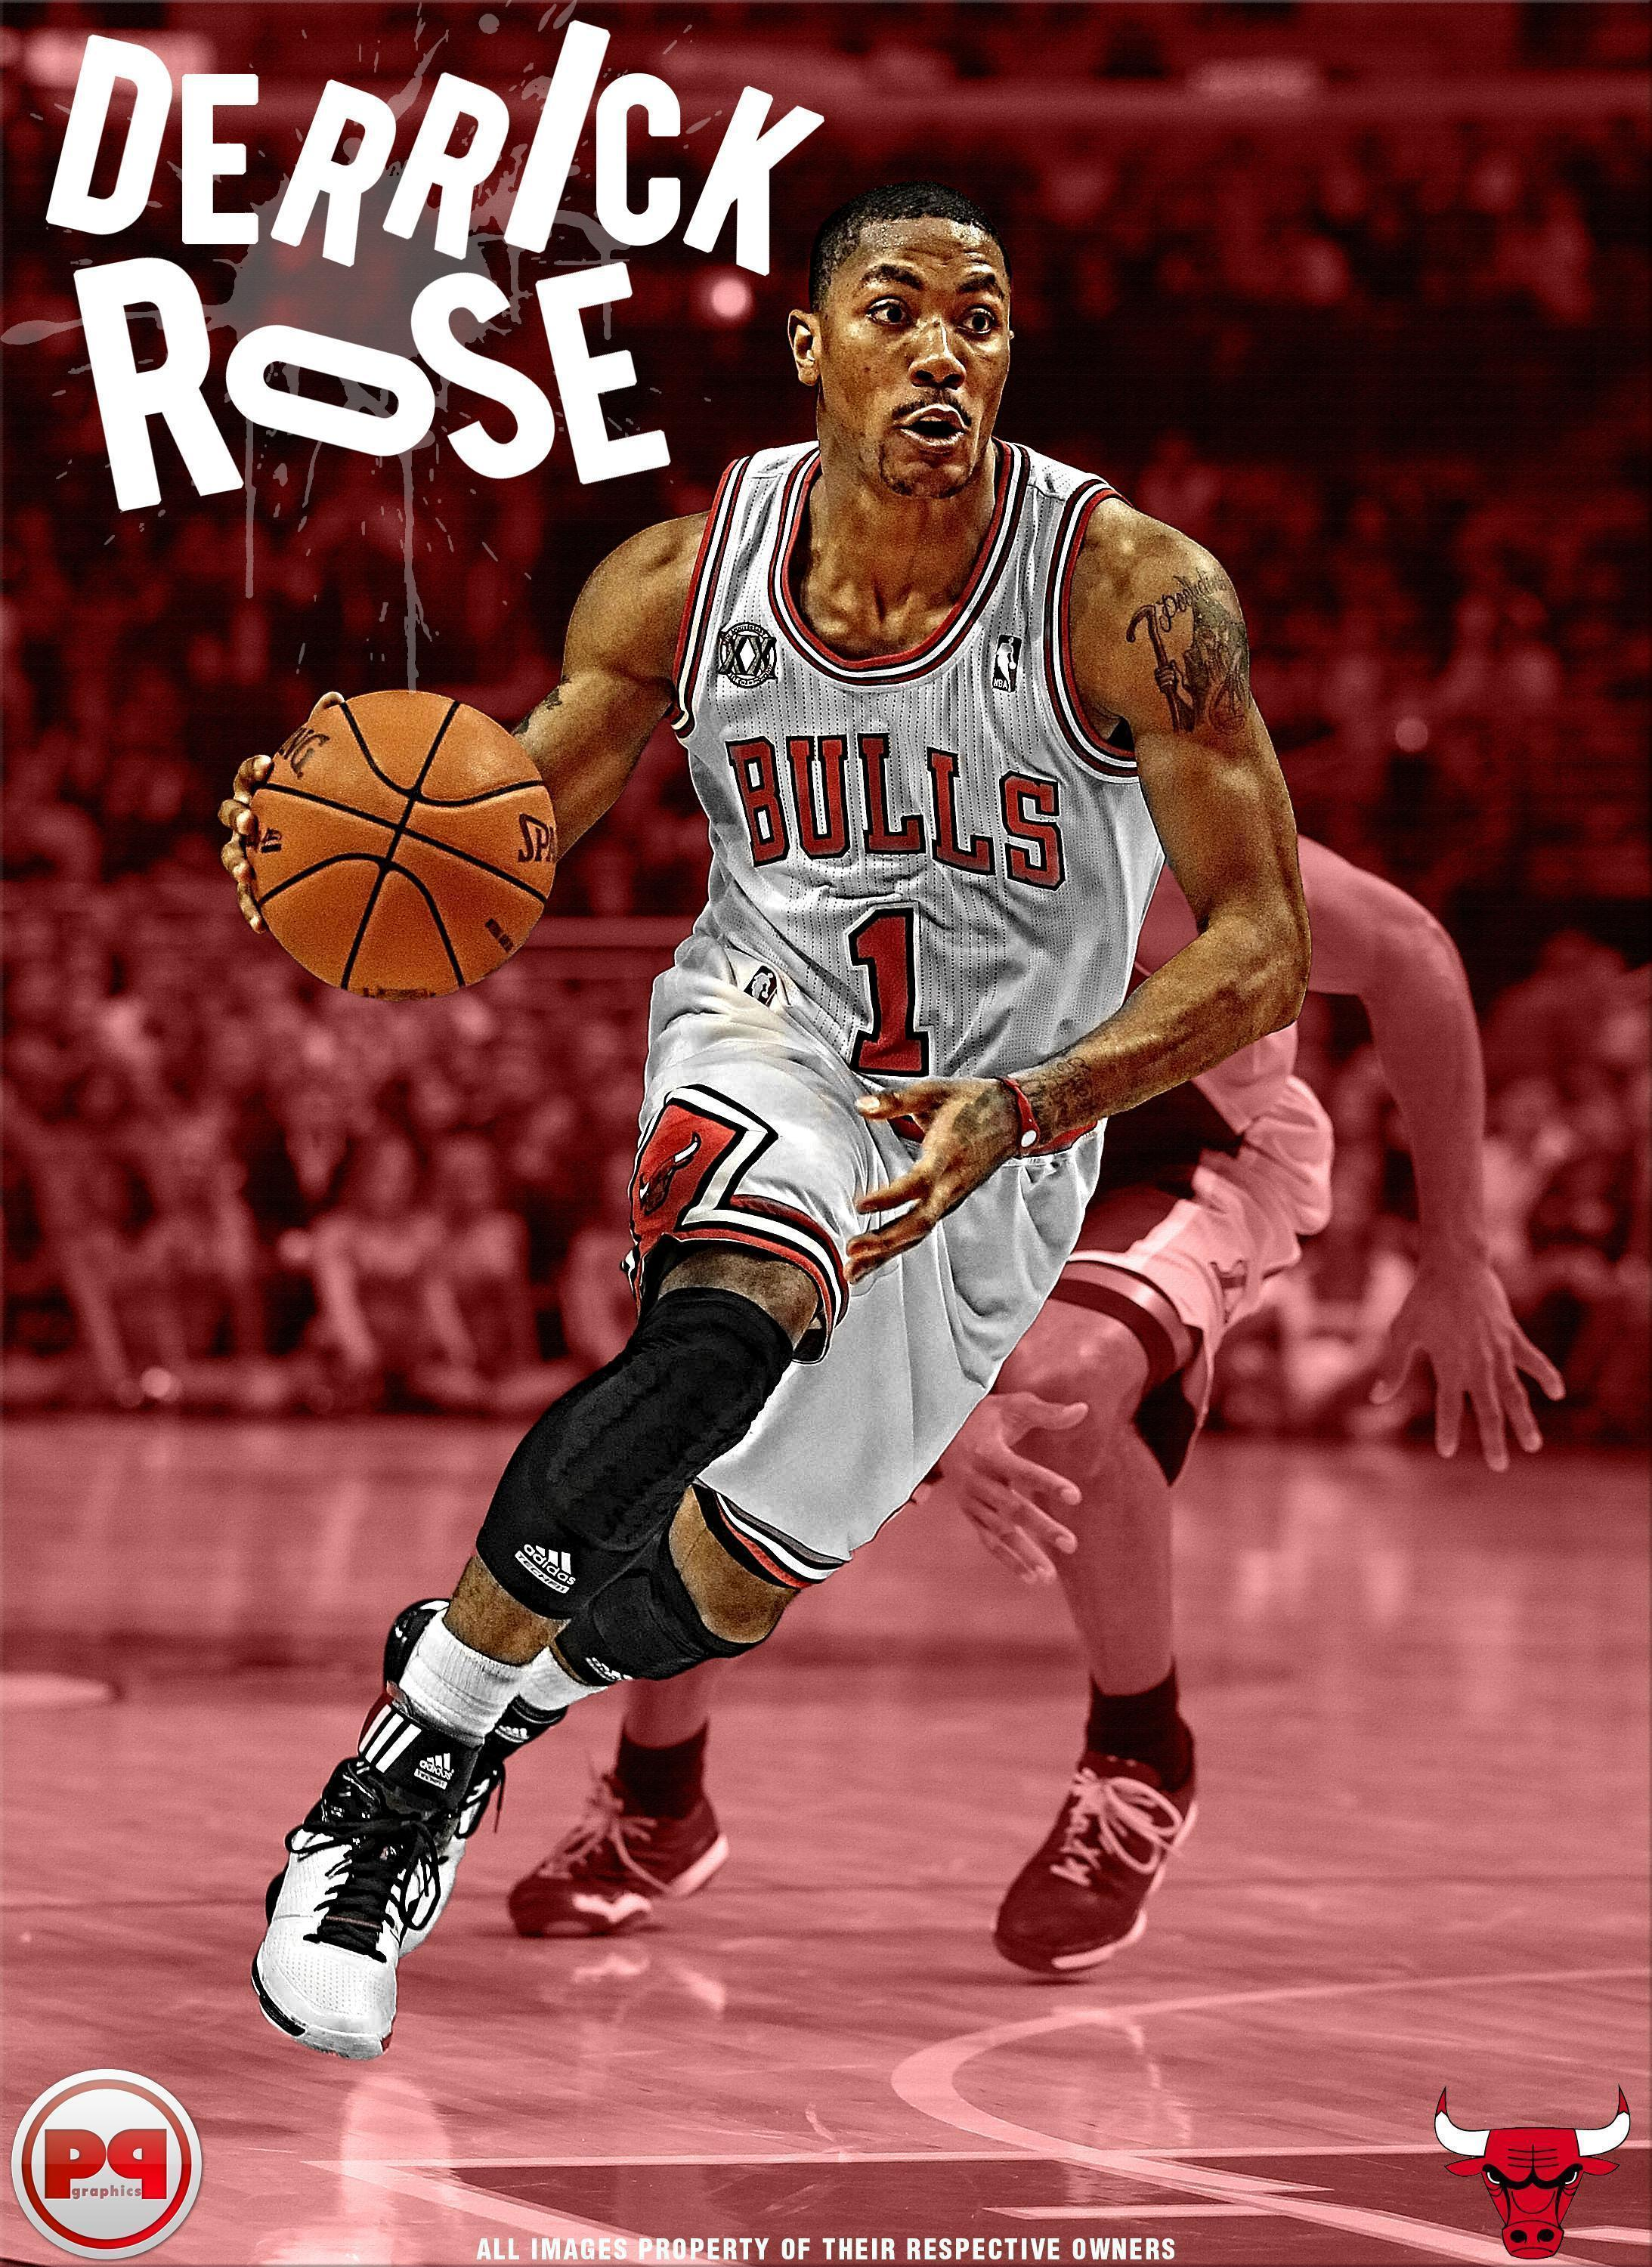 Derrick rose wallpapers 2015 hd wallpaper cave - Derrick rose cavs wallpaper ...